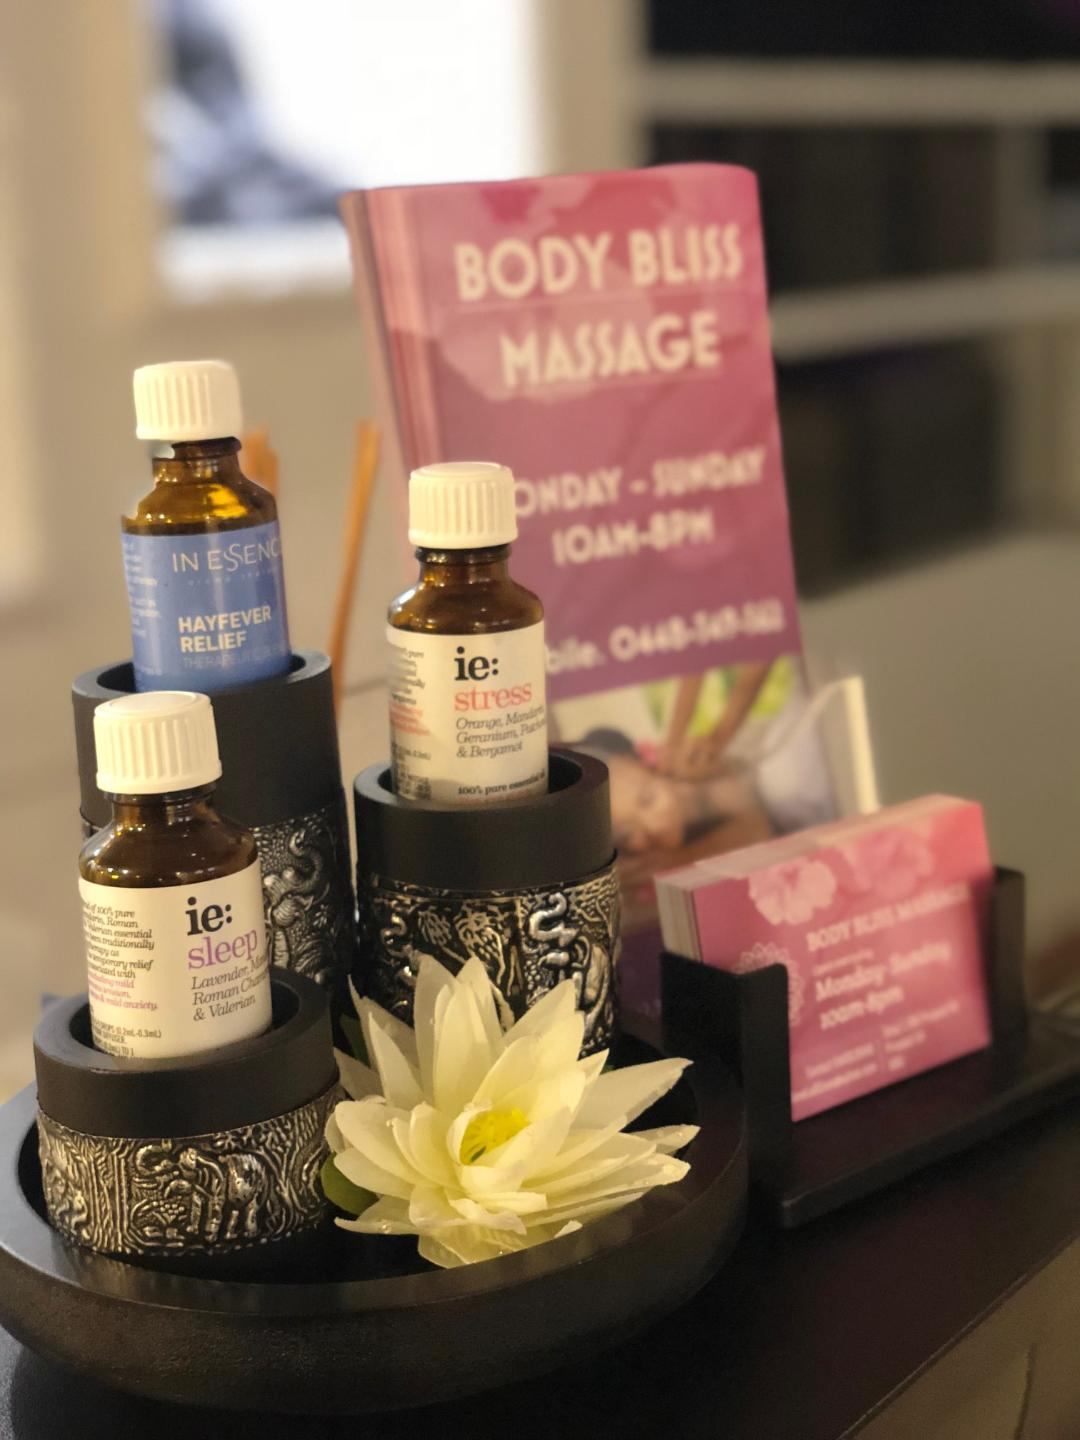 Body Bliss Massage